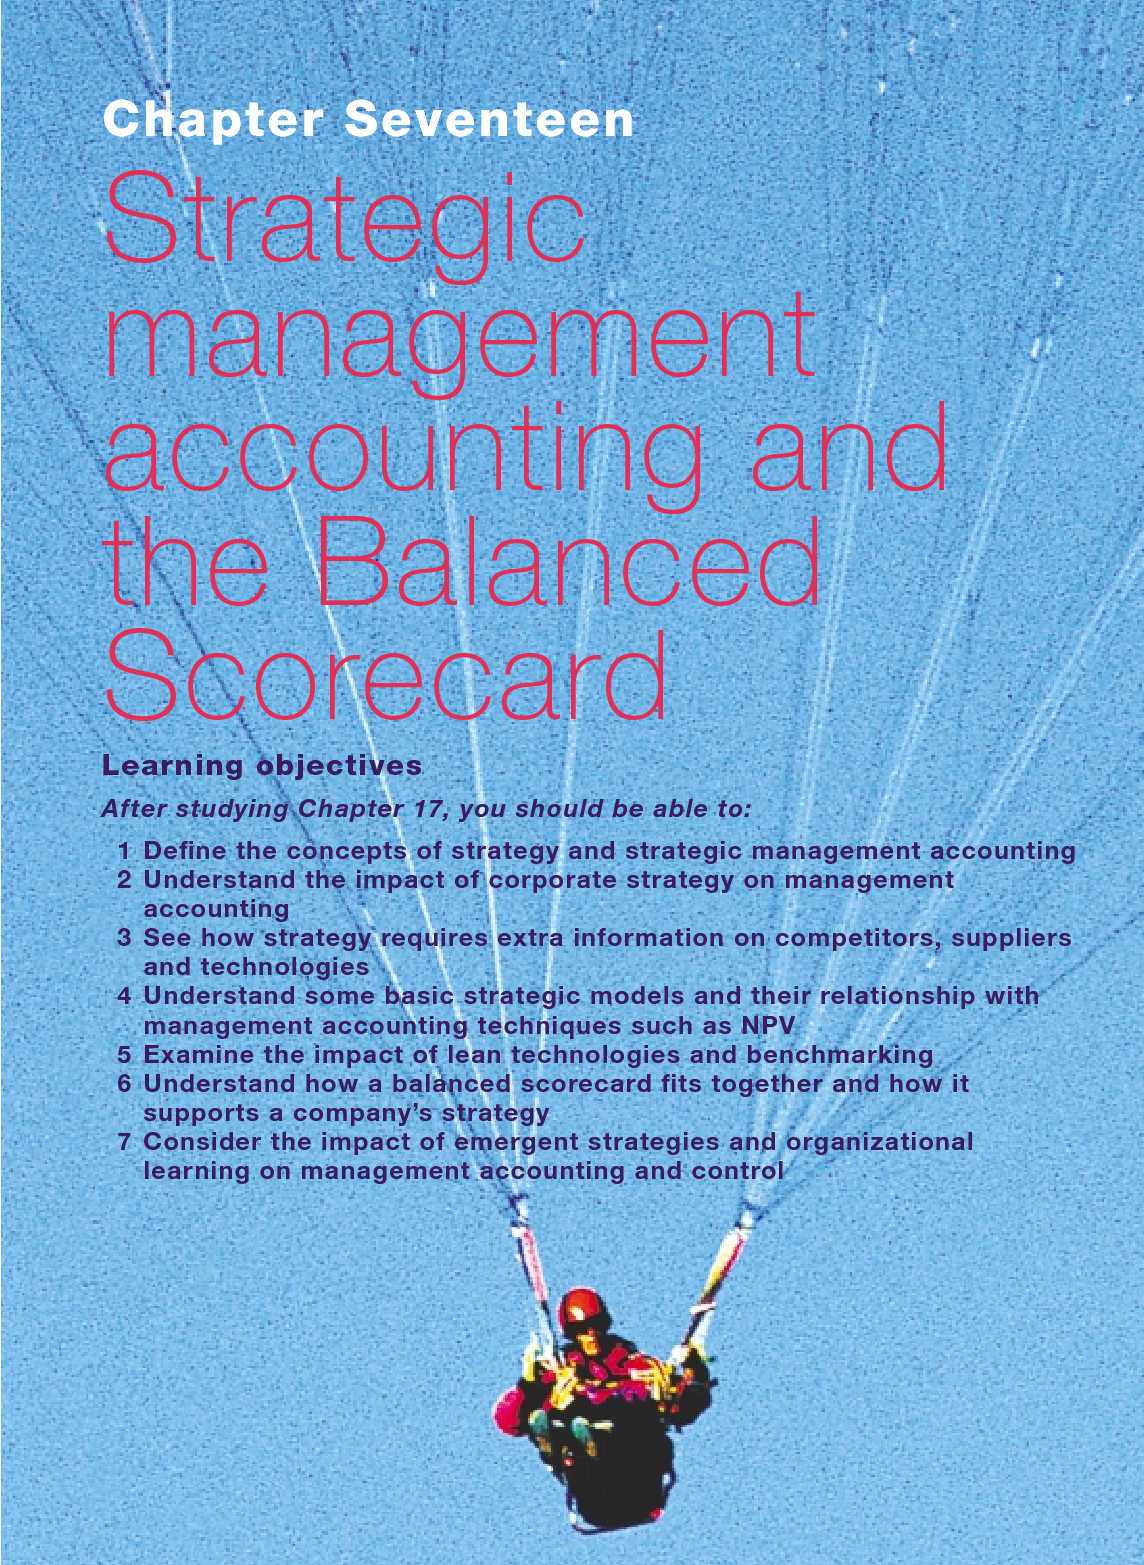 strategic management accounting and balanced score